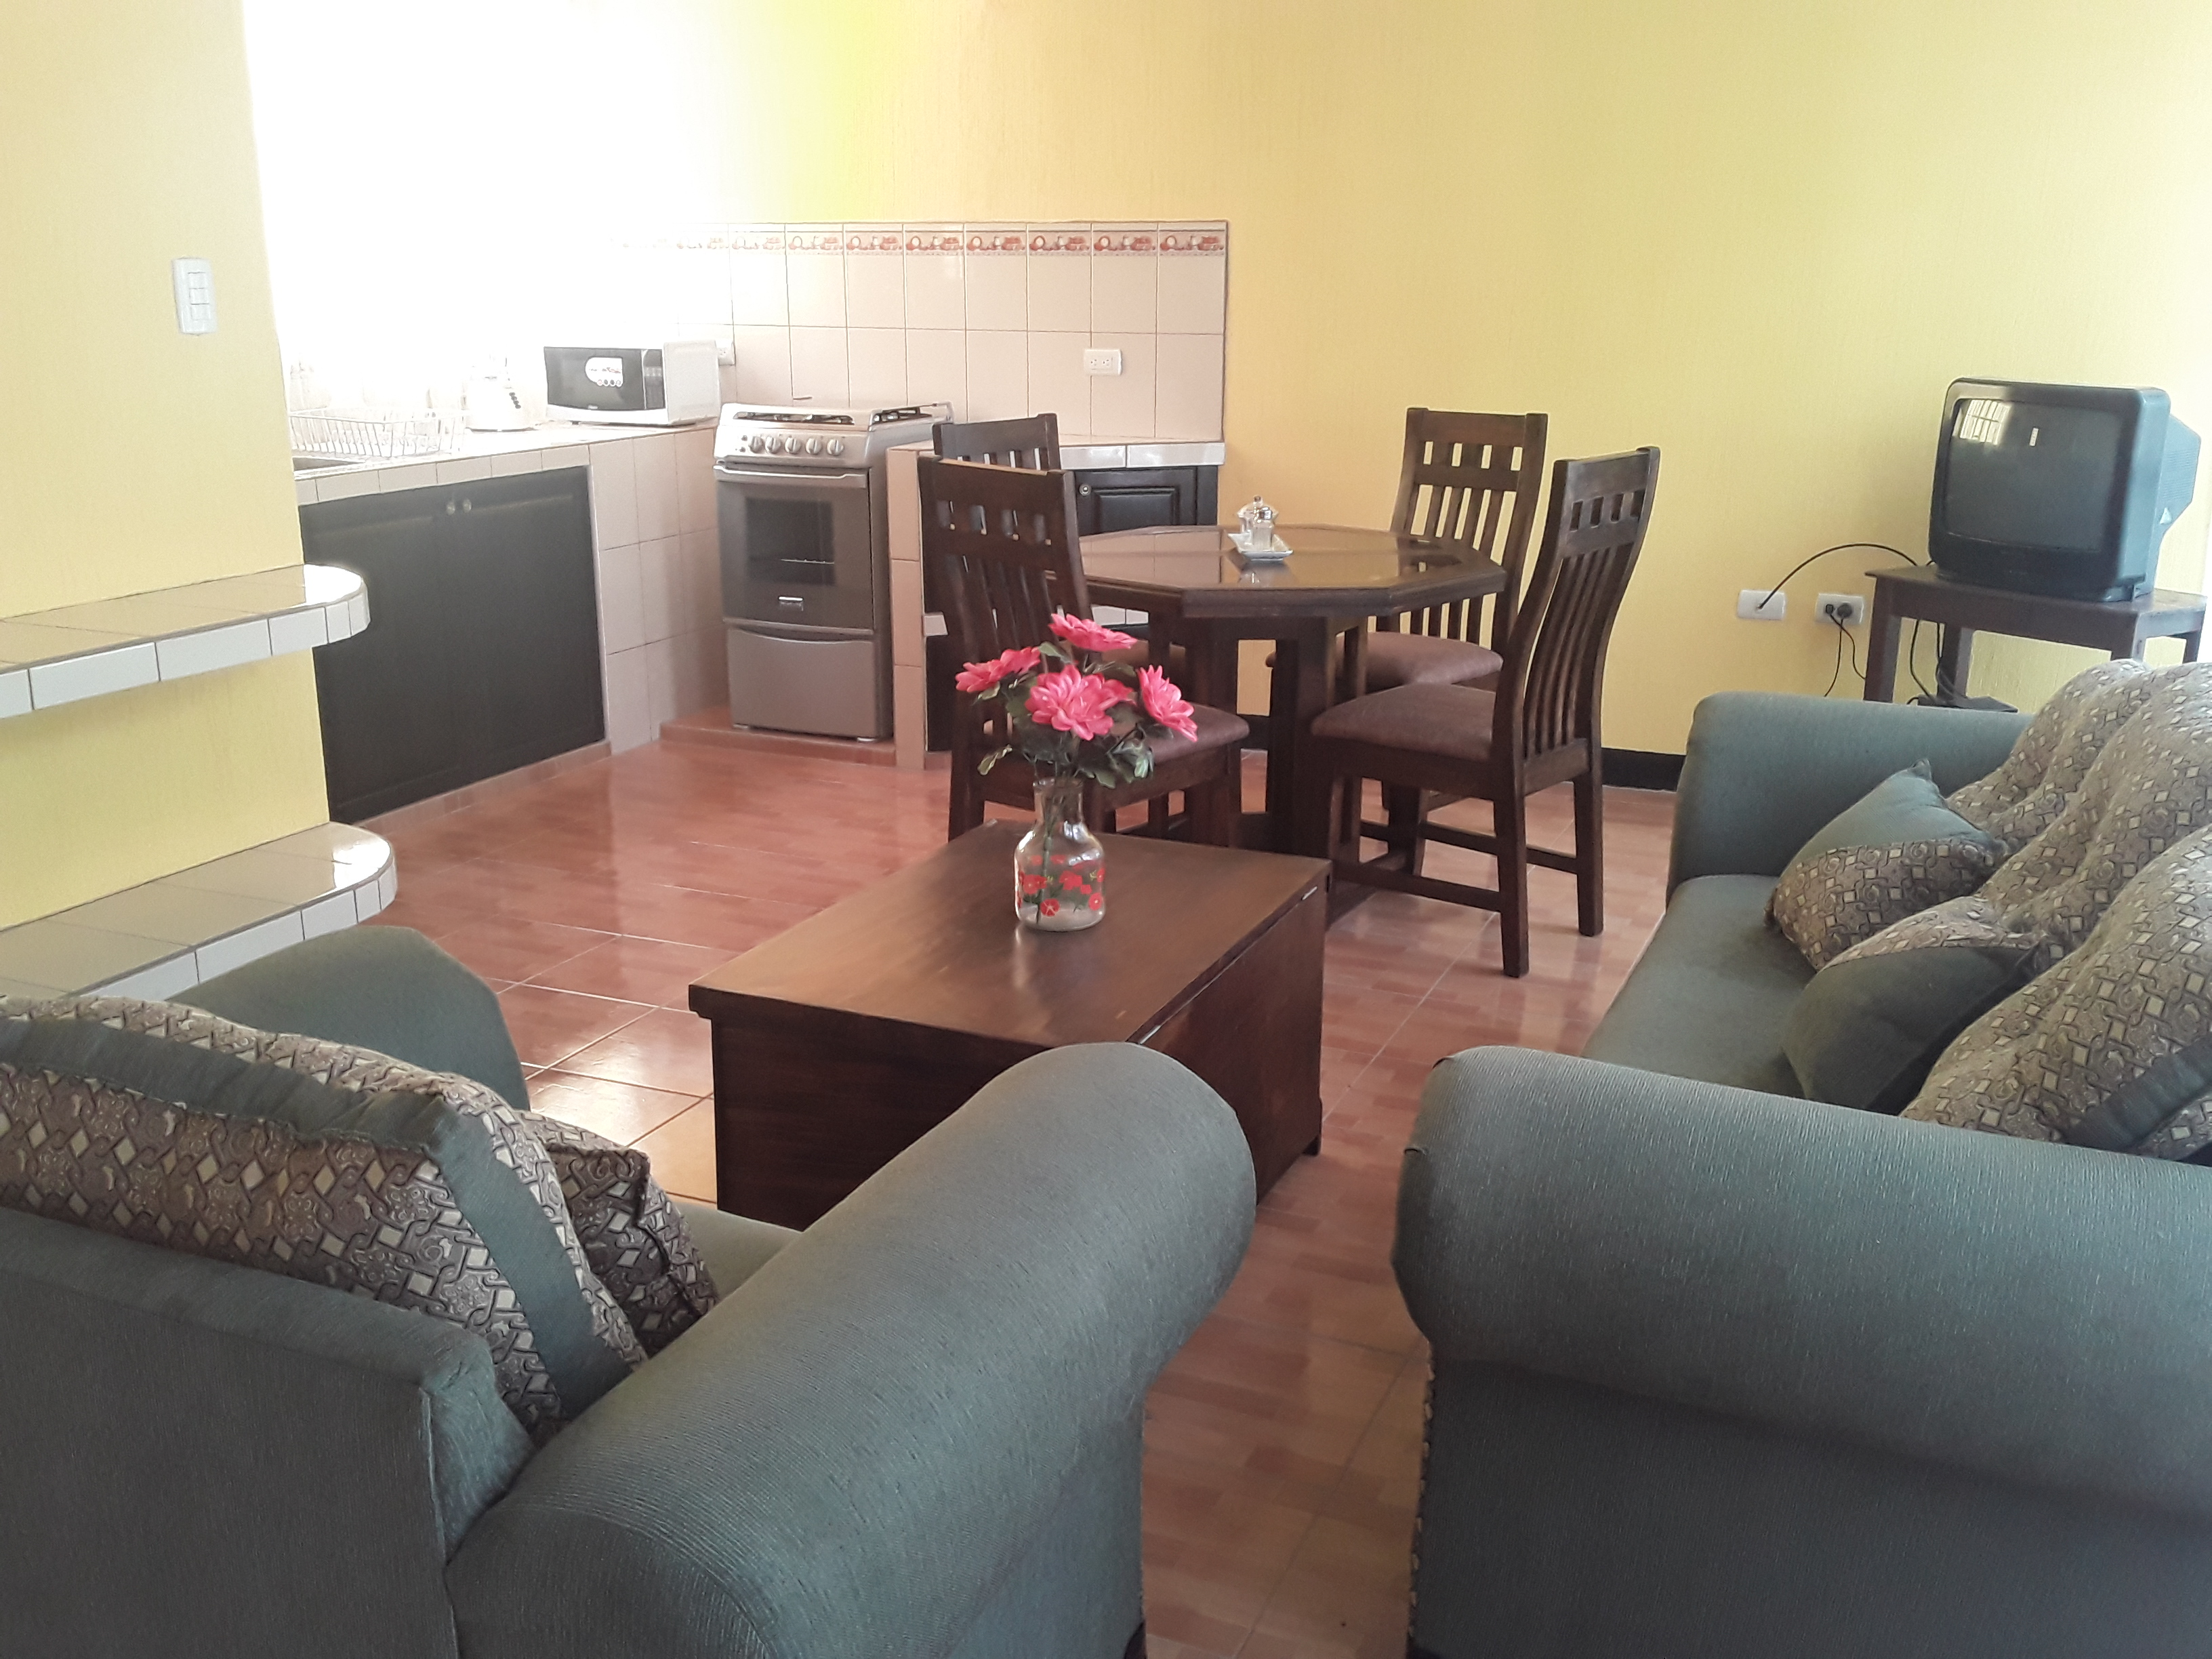 4931  2 BEDROOMS APARTAMENT IN ÁREA OF PANORAMA, 1.5KM. FROM CENTRAL ANTIGUA GUATEMALA. (as)